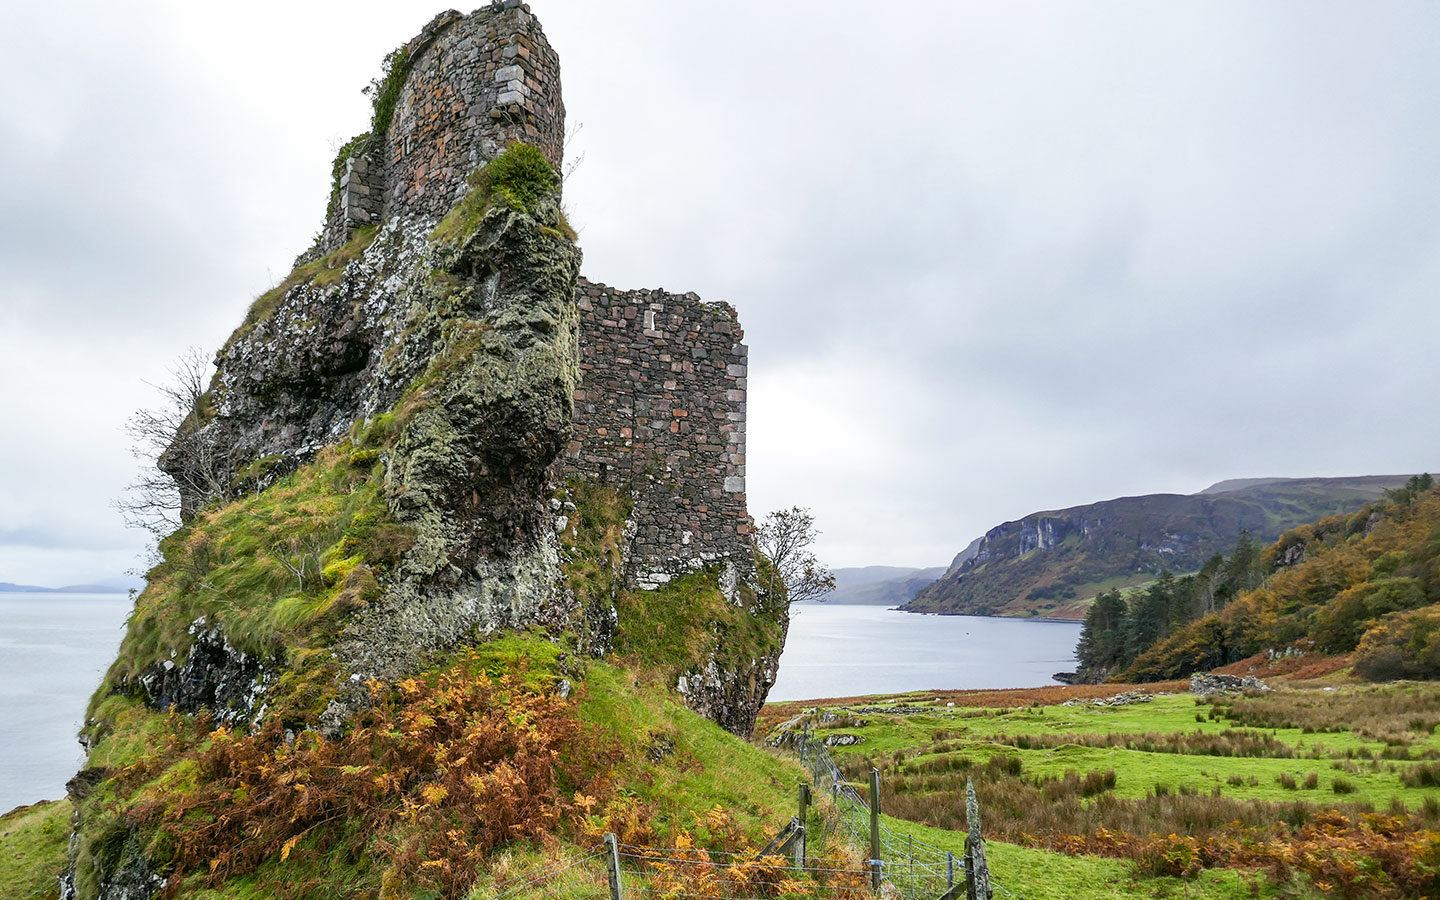 Visiting Brochel Castle ruins on a day trip to Raasay island in the Inner Hebrides, Scotland